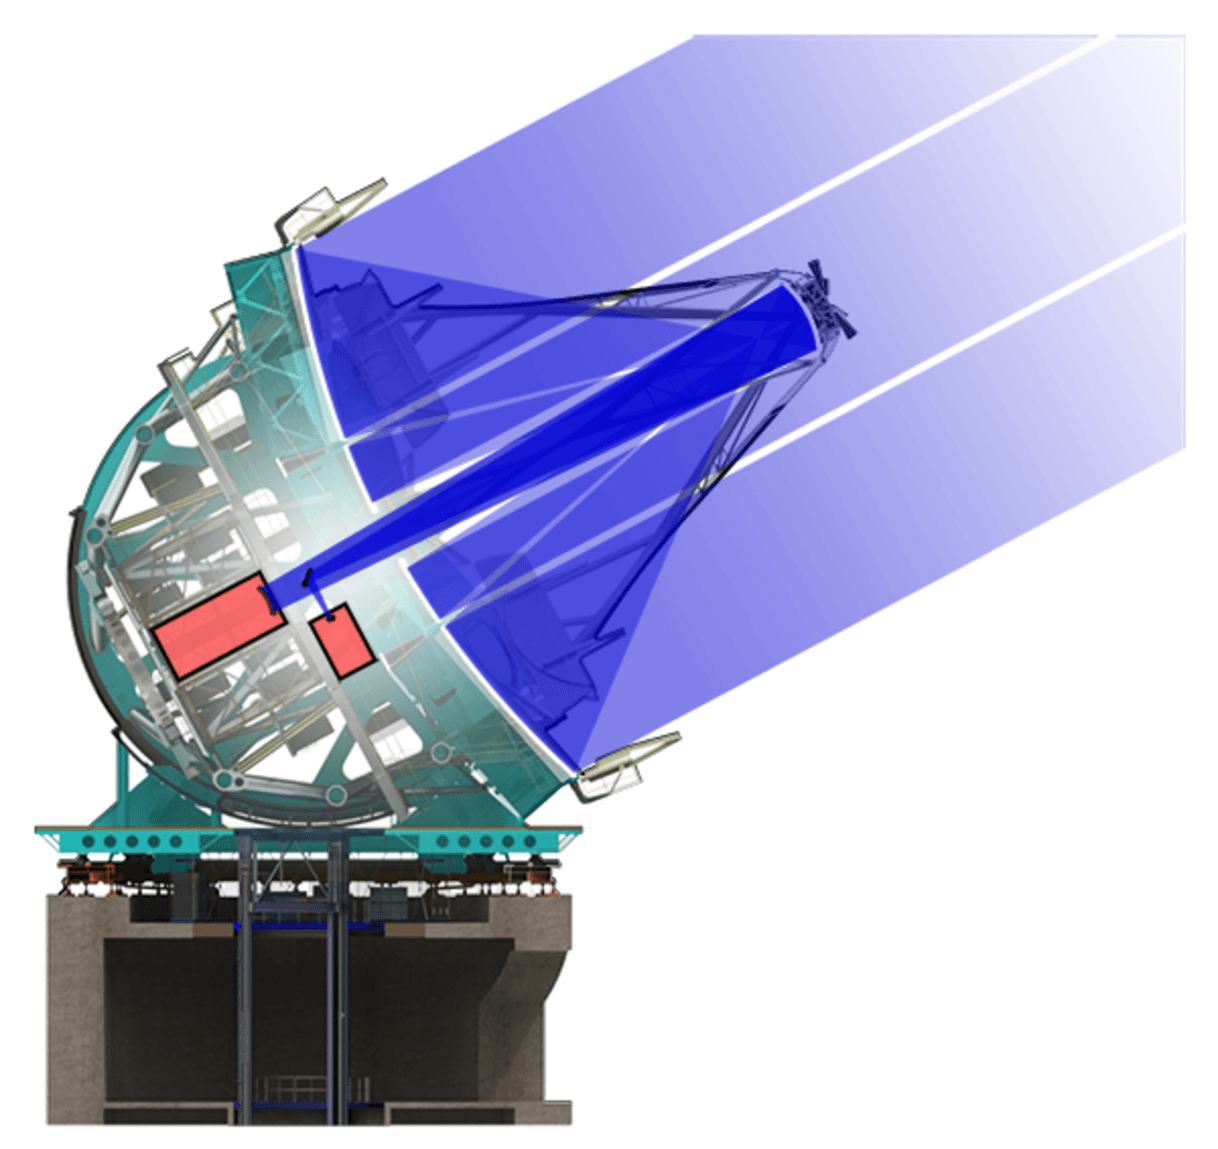 Optical telescope | College paper Sample - August 2019